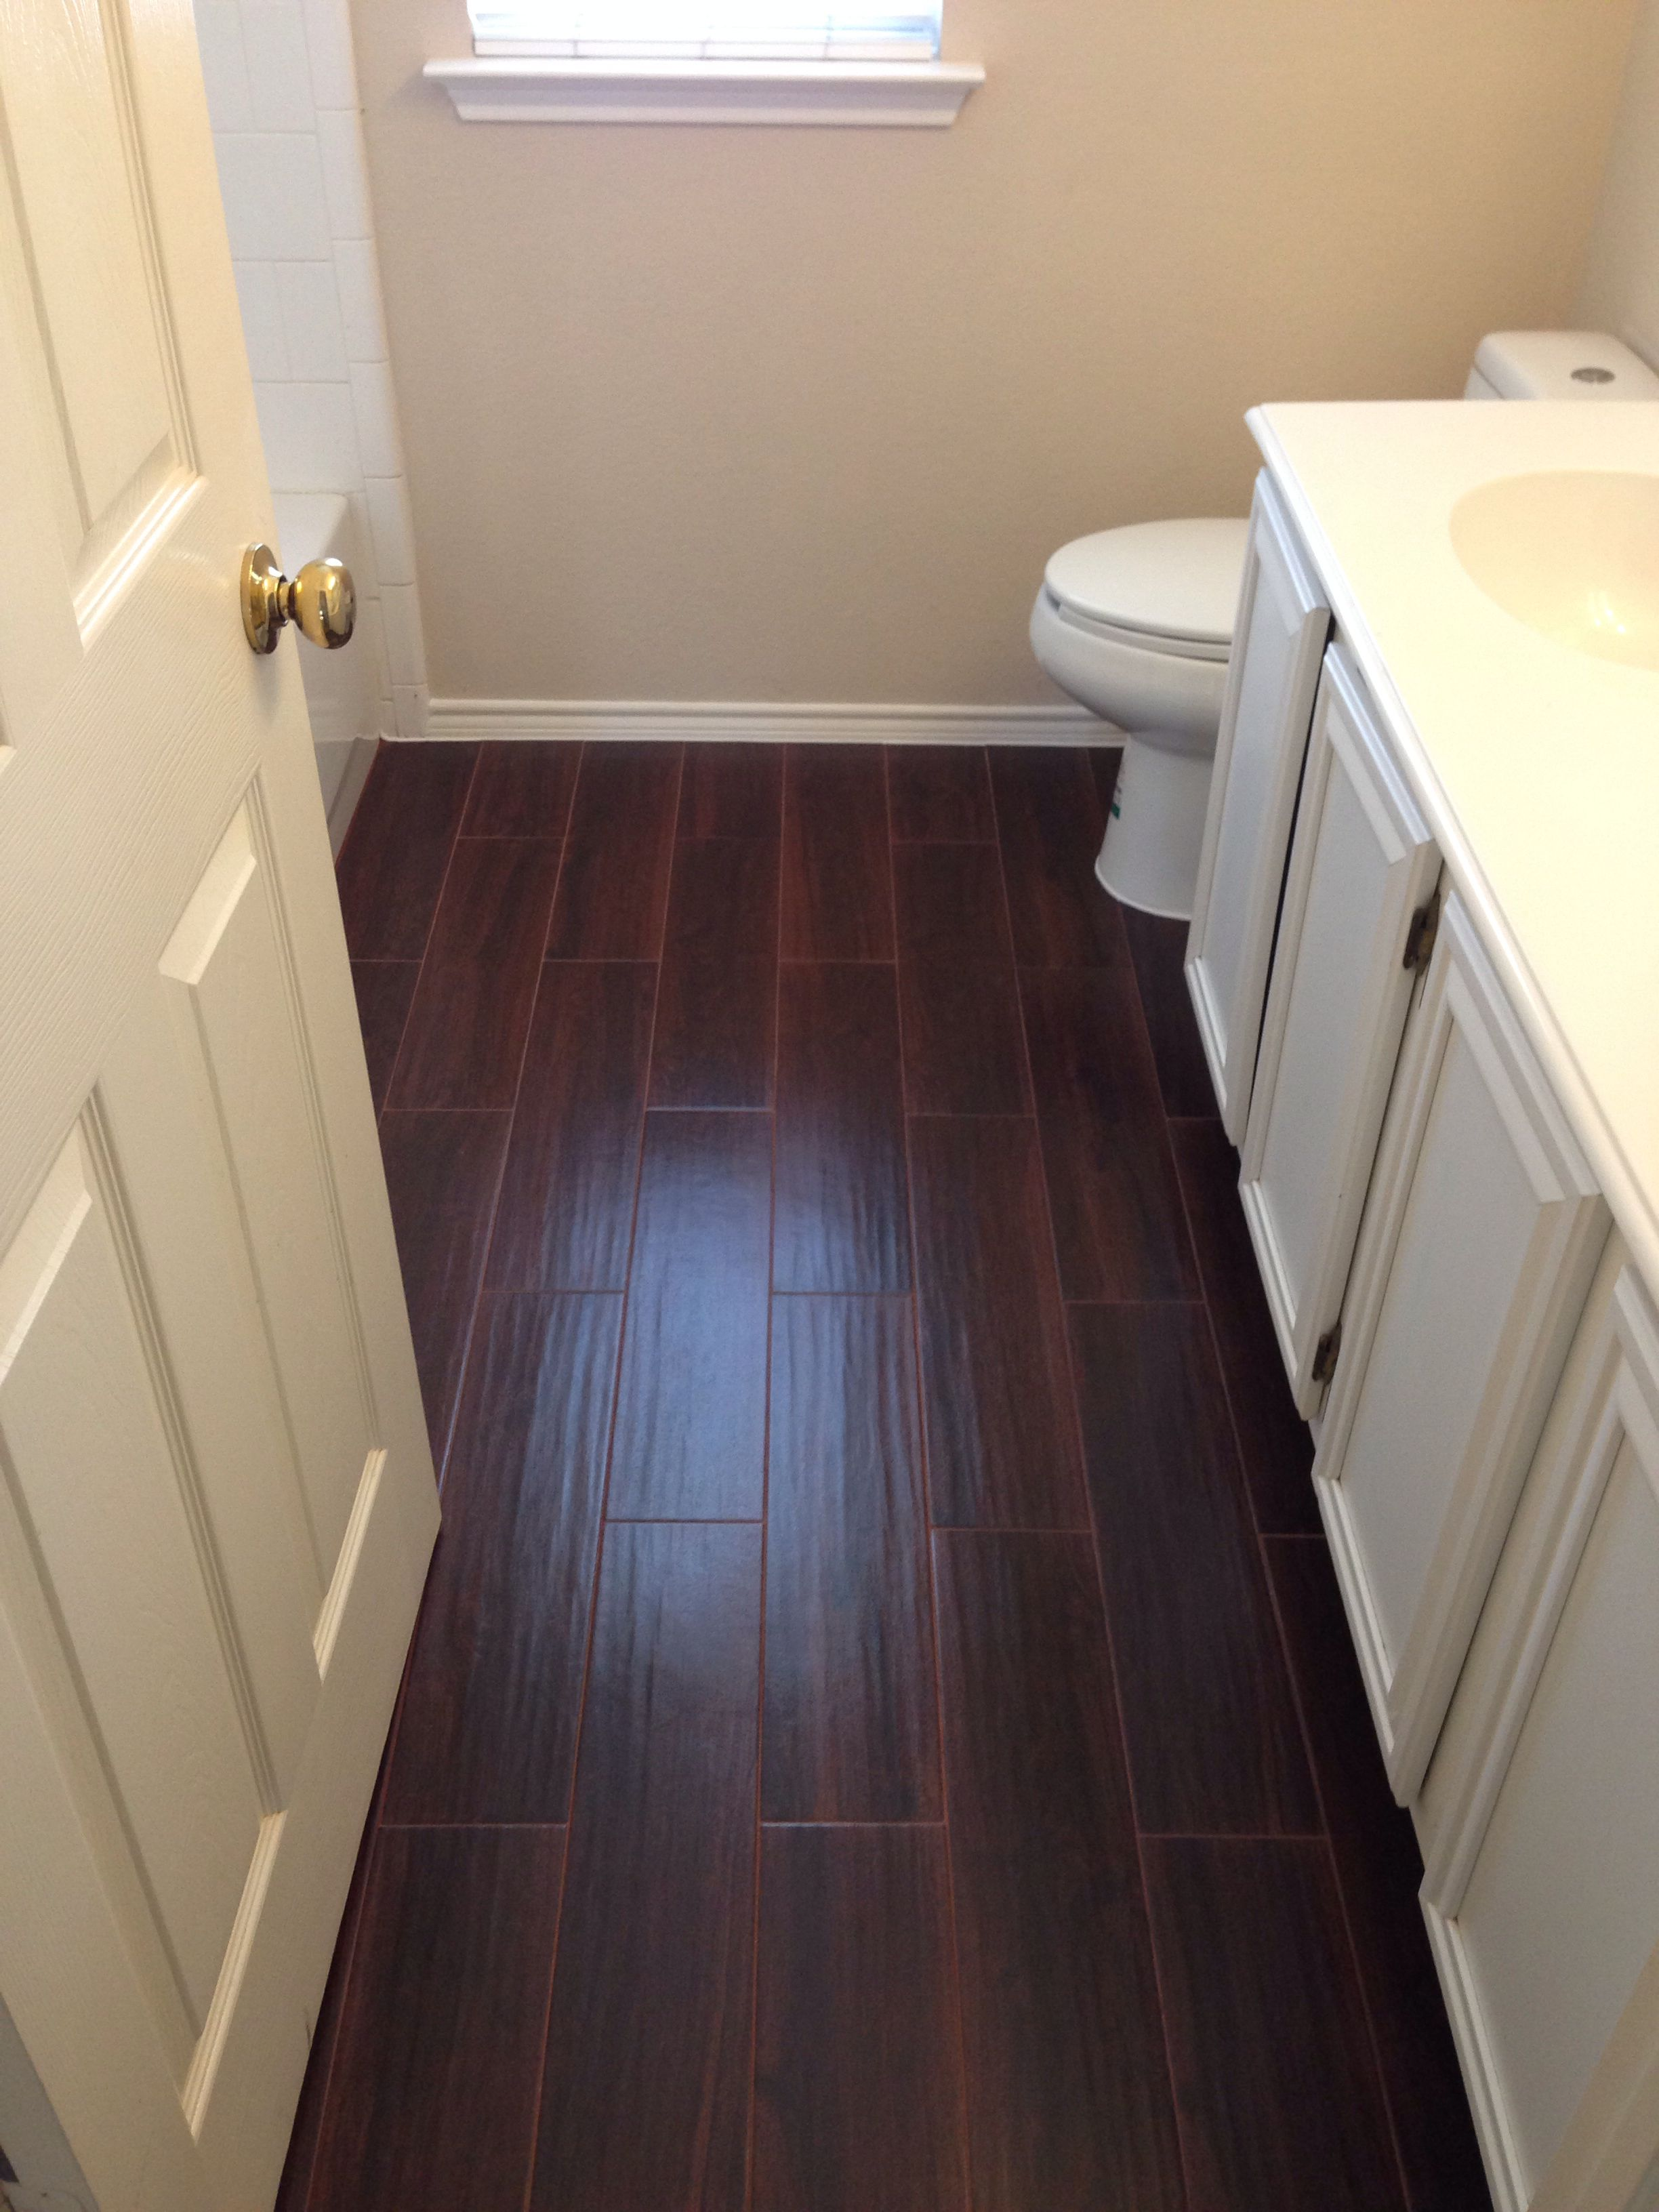 We used porcelain tile that looks like hardwood for our bathroom we used porcelain tile that looks like hardwood for our bathroom floor love it doublecrazyfo Images